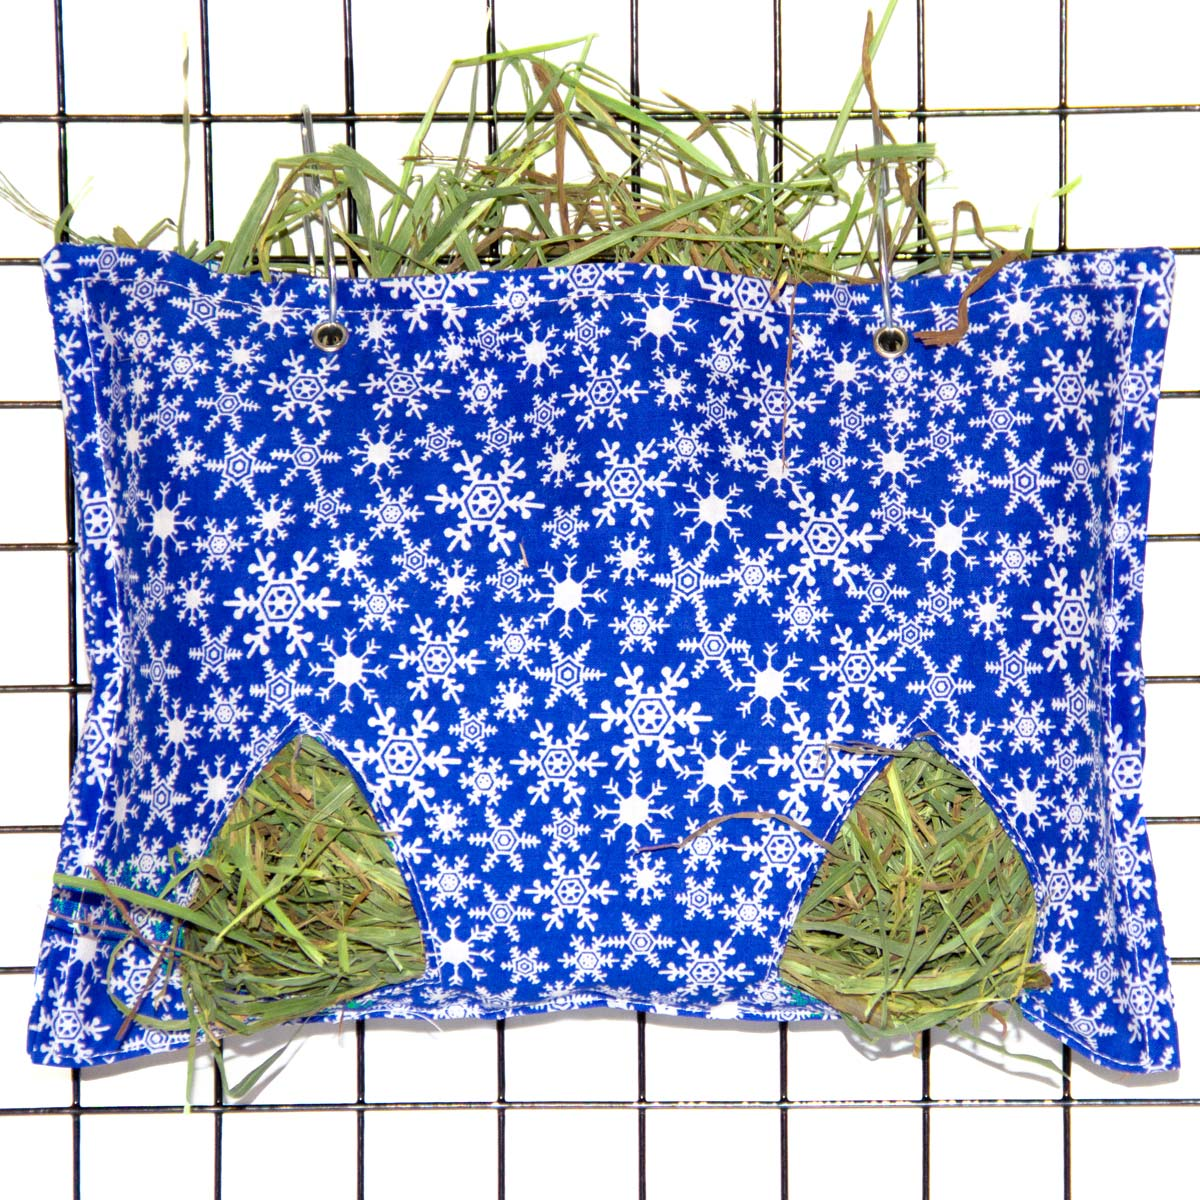 Haybag in Blue Snowflakes